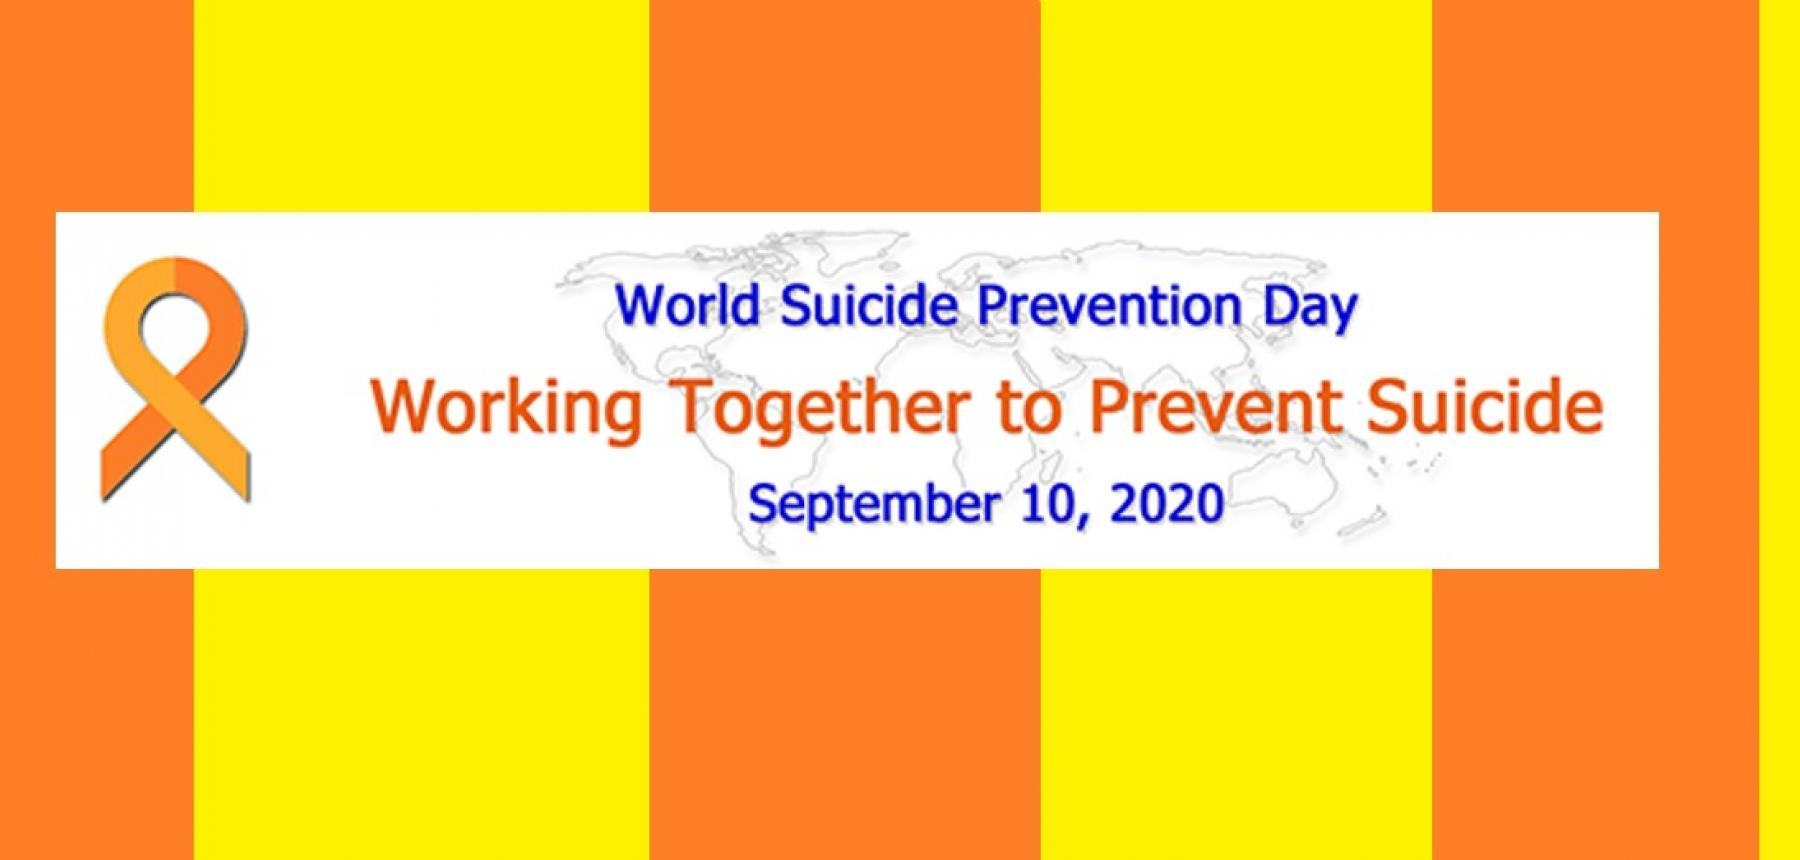 World Suicide Prevention Day 2020 Banner